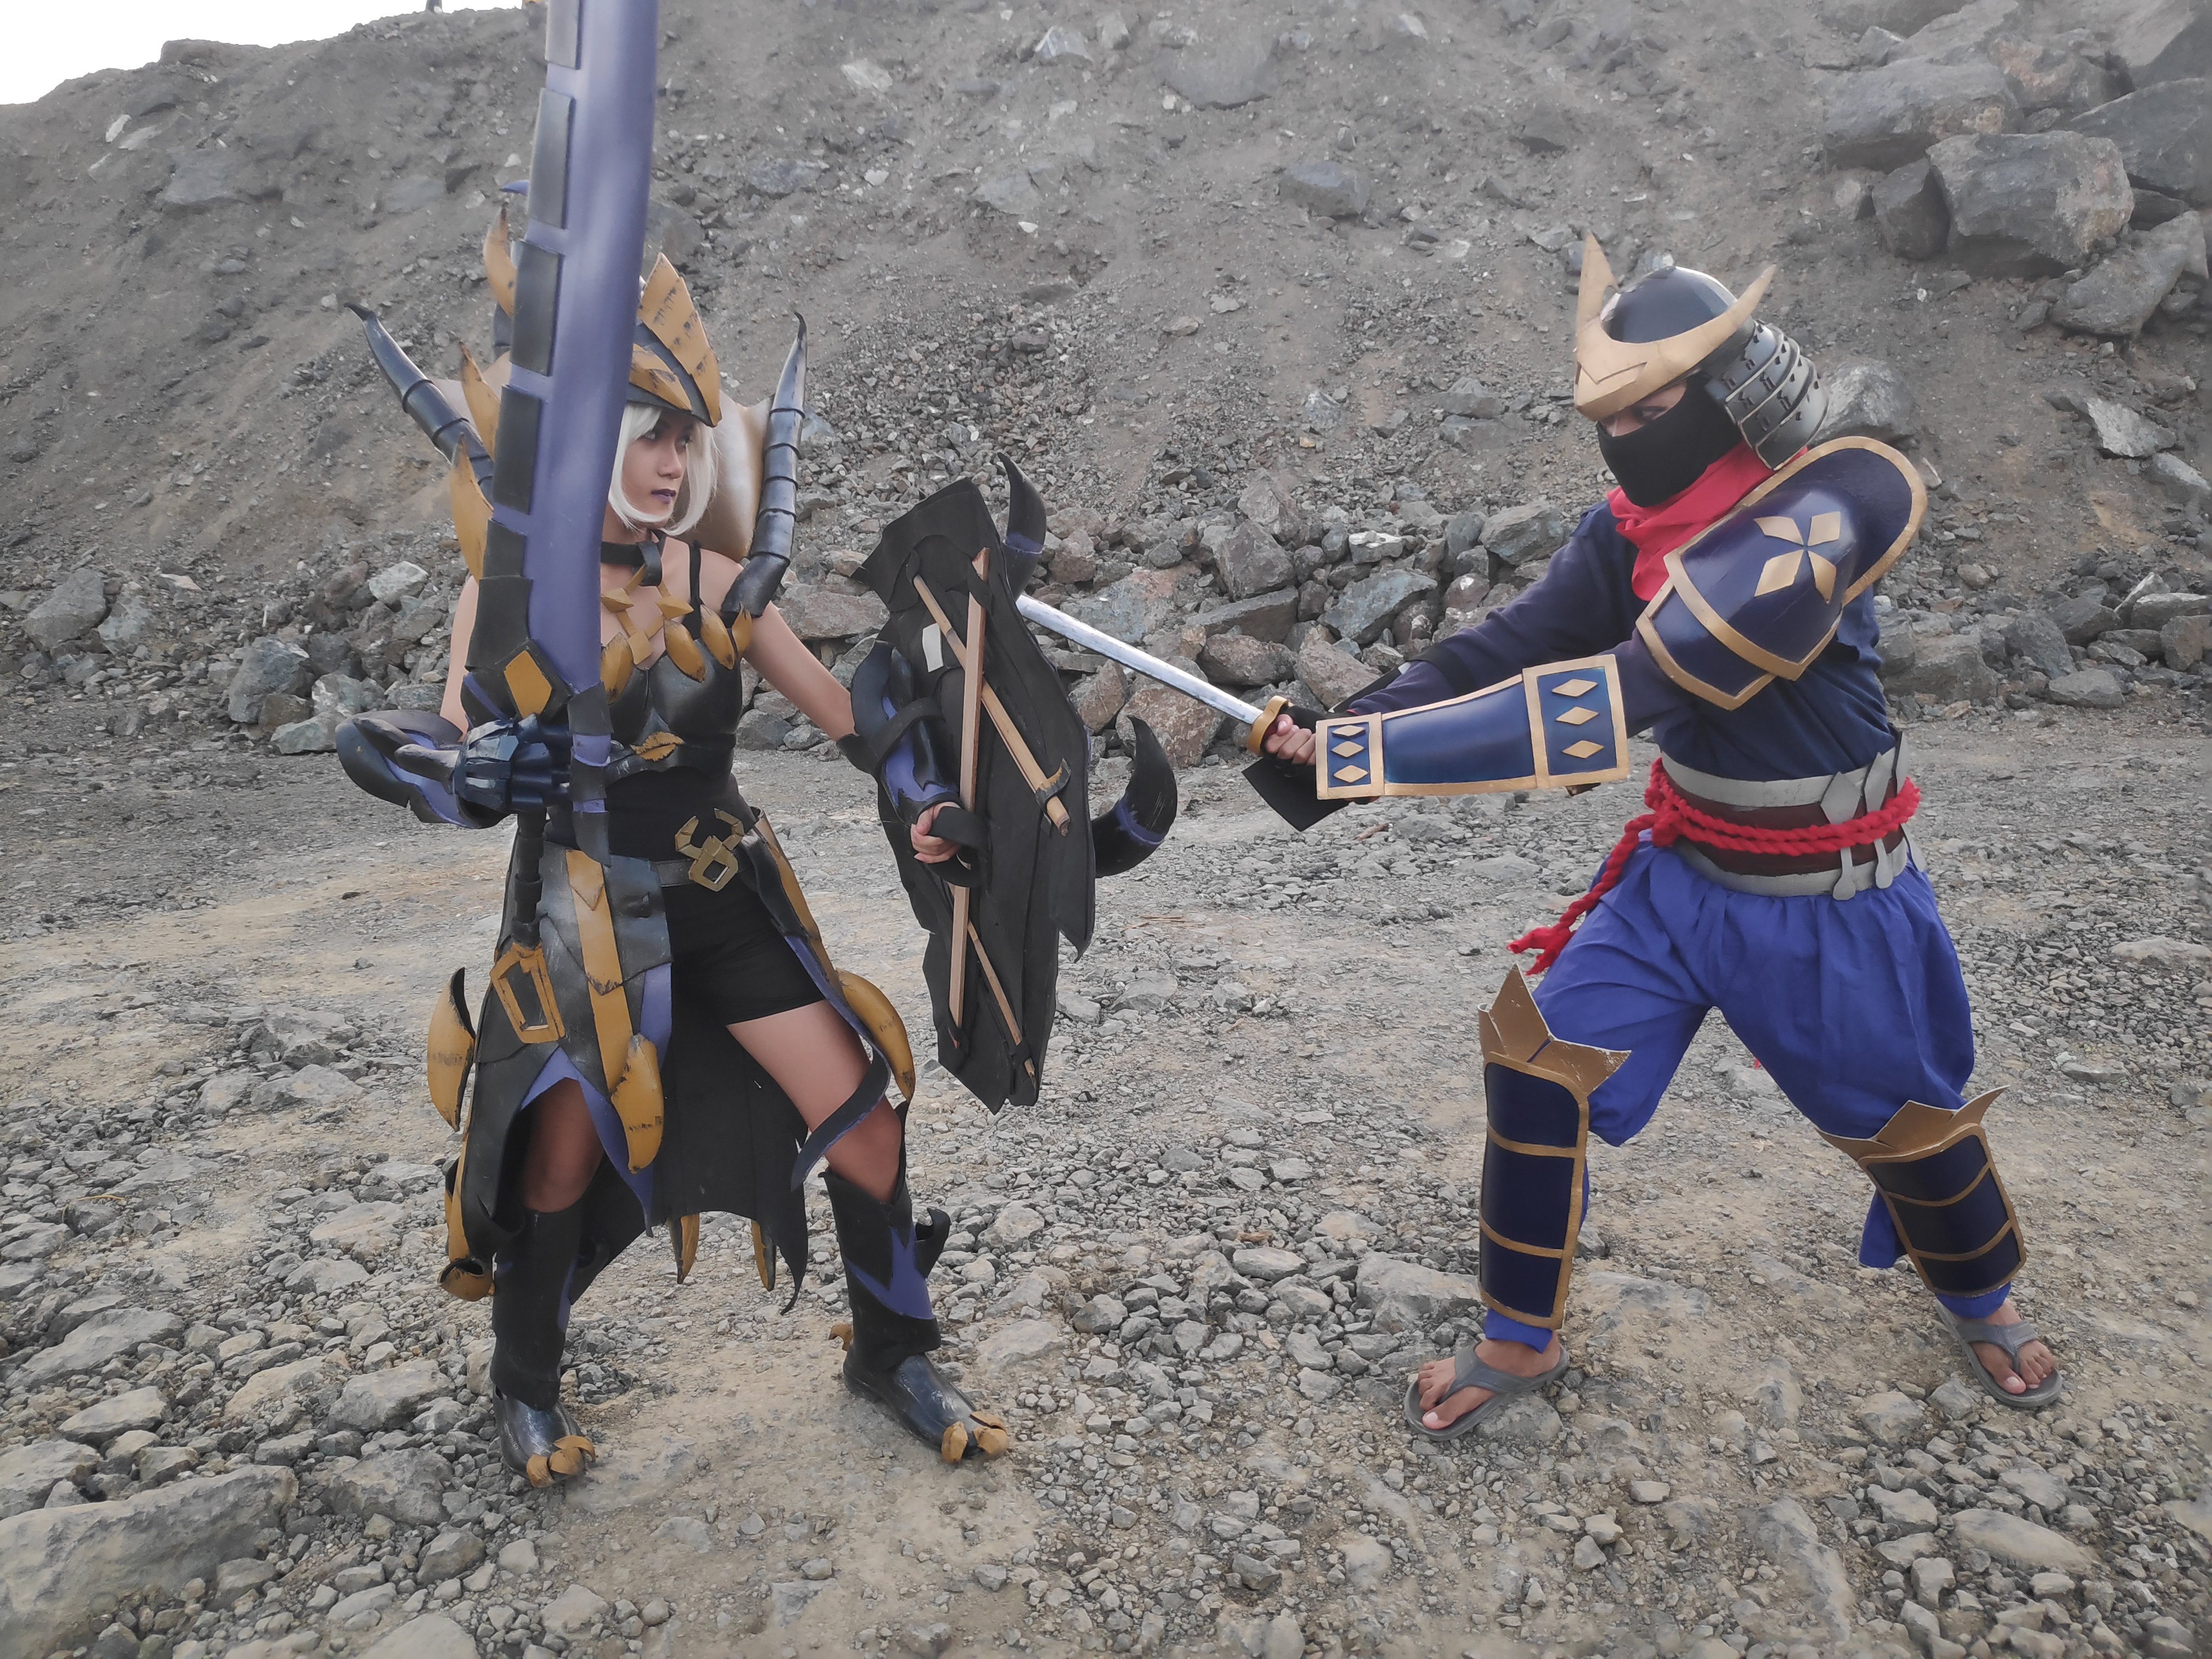 Two armored cosplayers battling